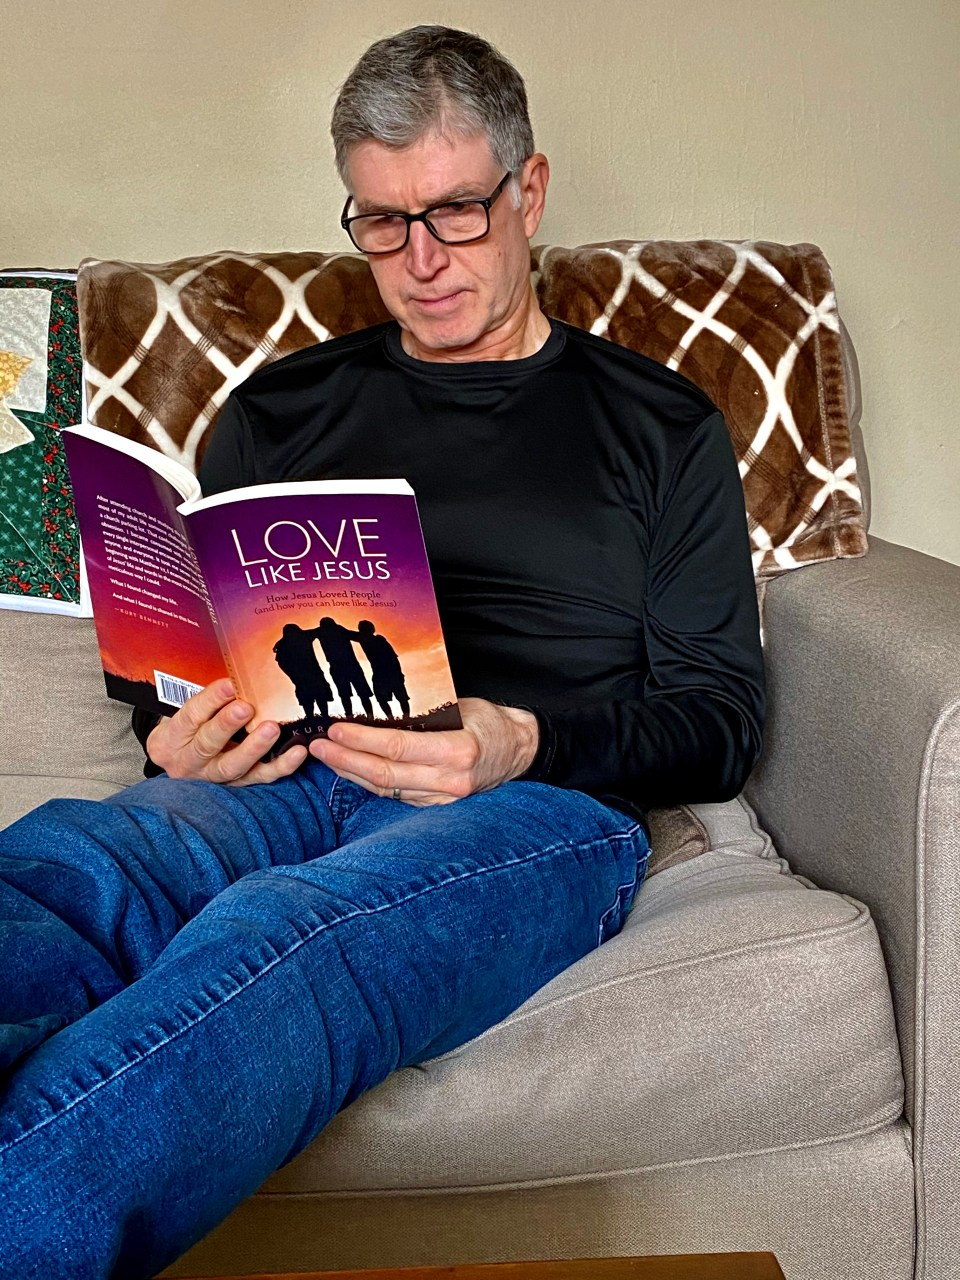 Kurt Reading on the Couch - Love Like Jesus